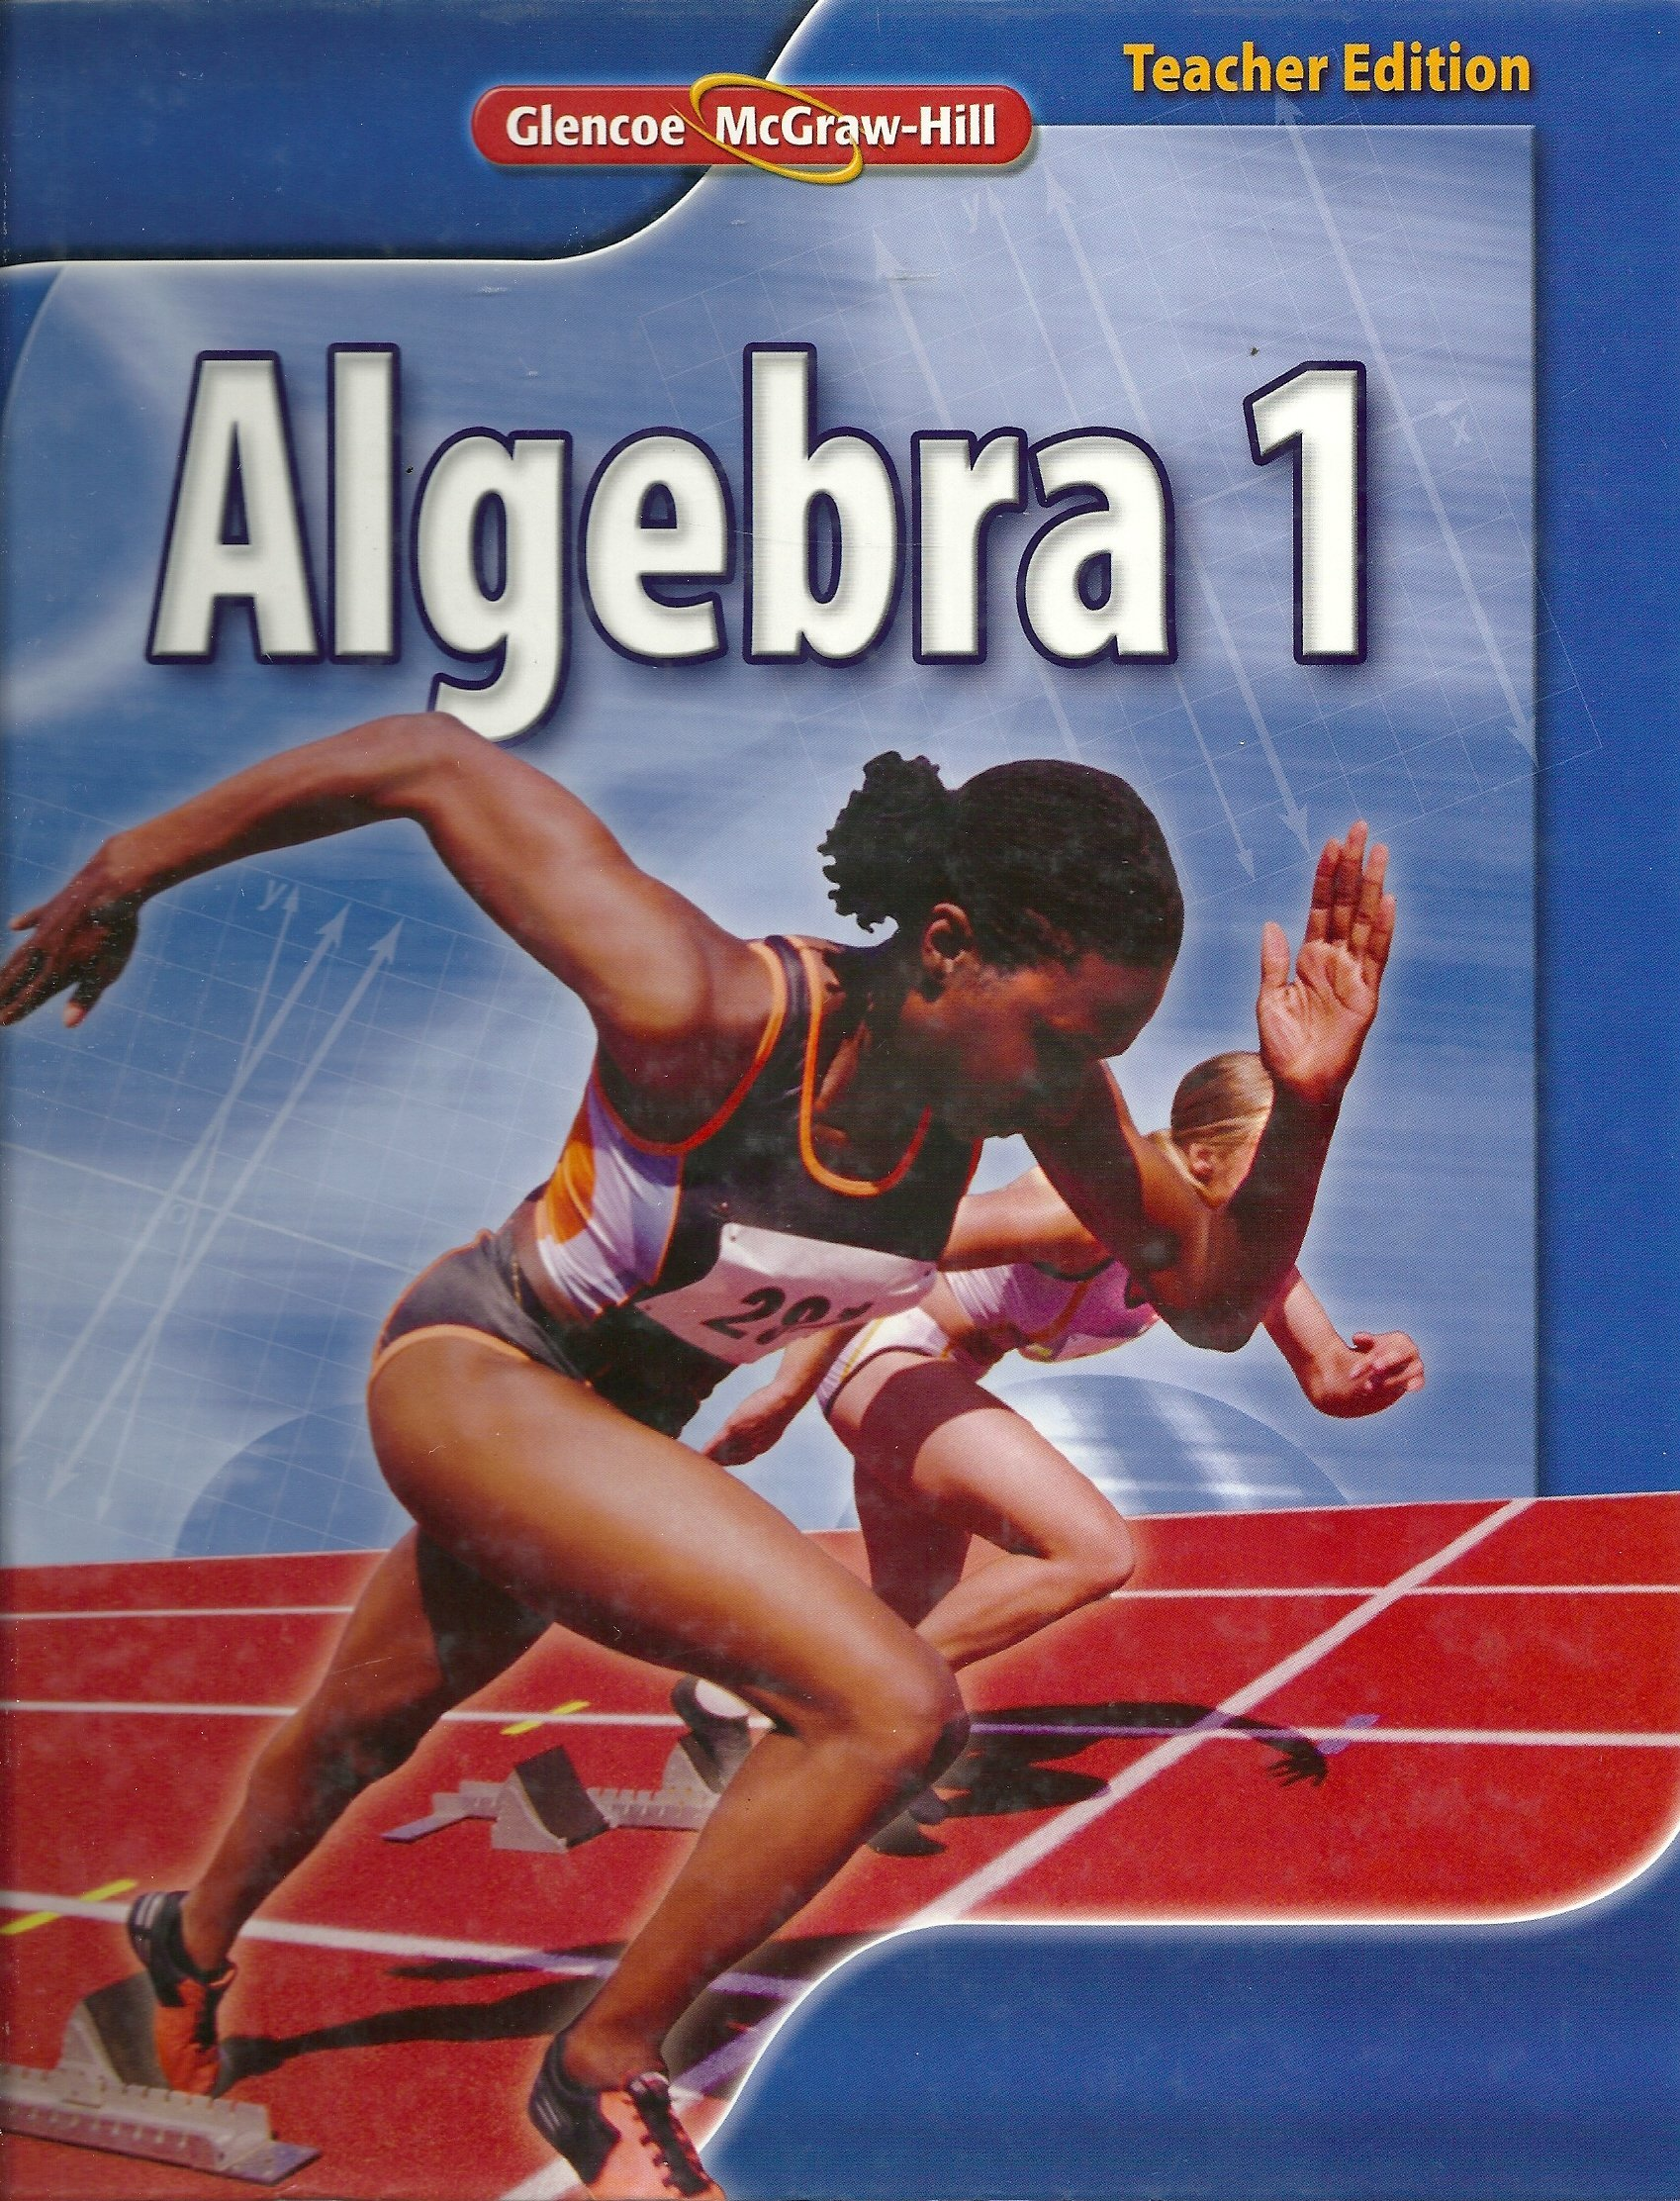 Glencoe McGraw Hill Algebra 1 Teacher Edition John A Carter – Glencoe Mcgraw Hill Algebra 1 Answers Worksheets